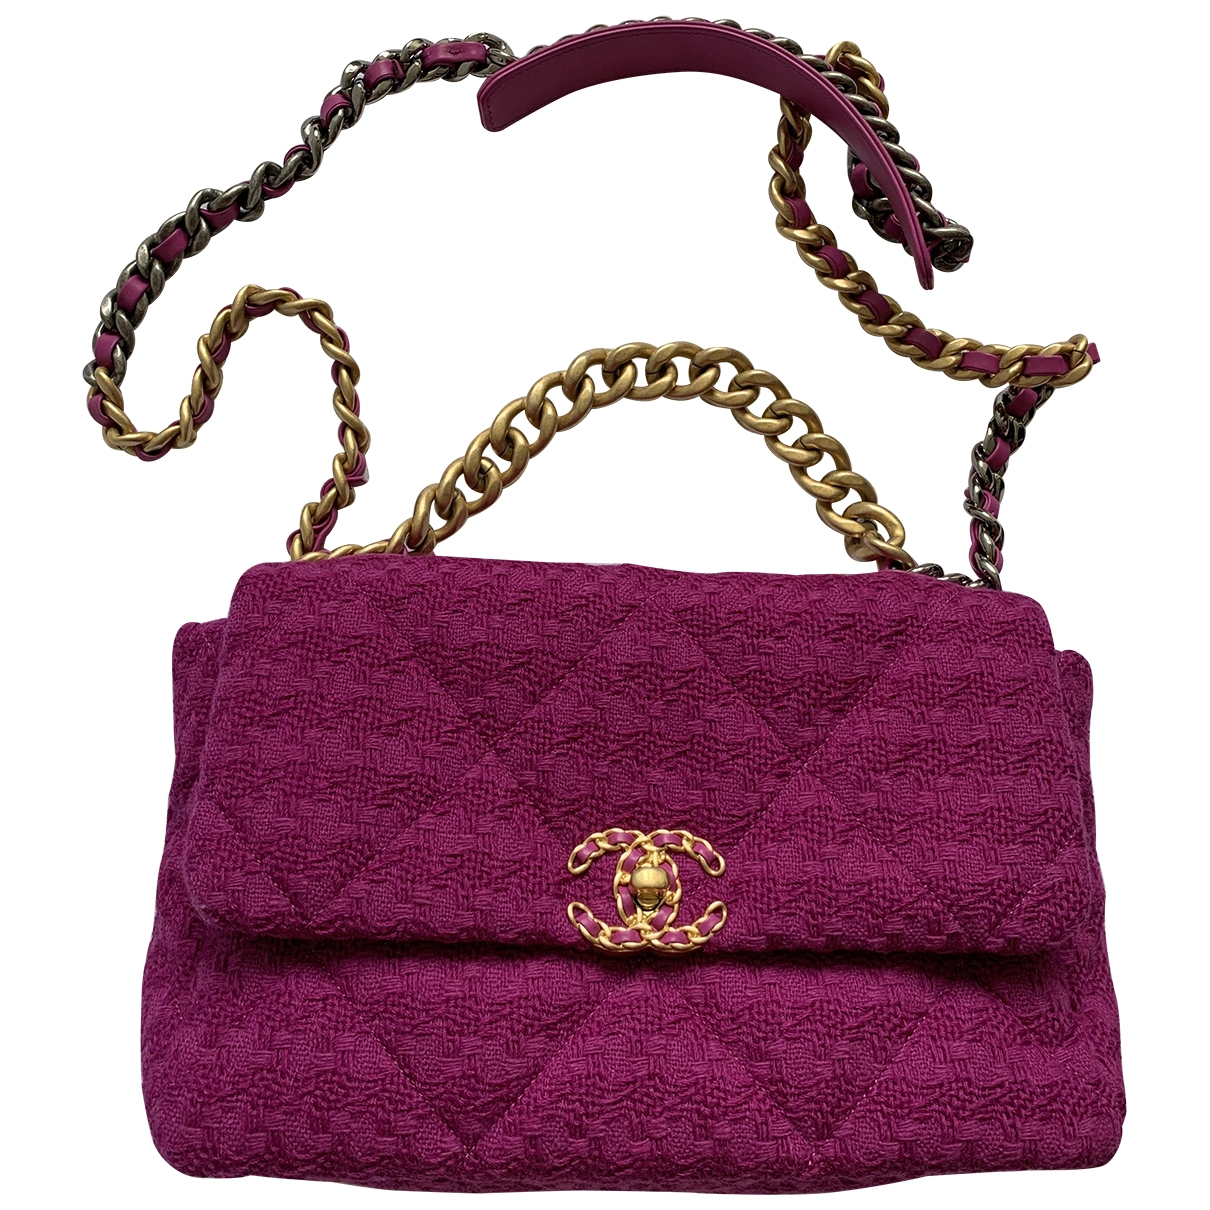 Chanel Chanel 19 Pink Tweed handbag for Women \N